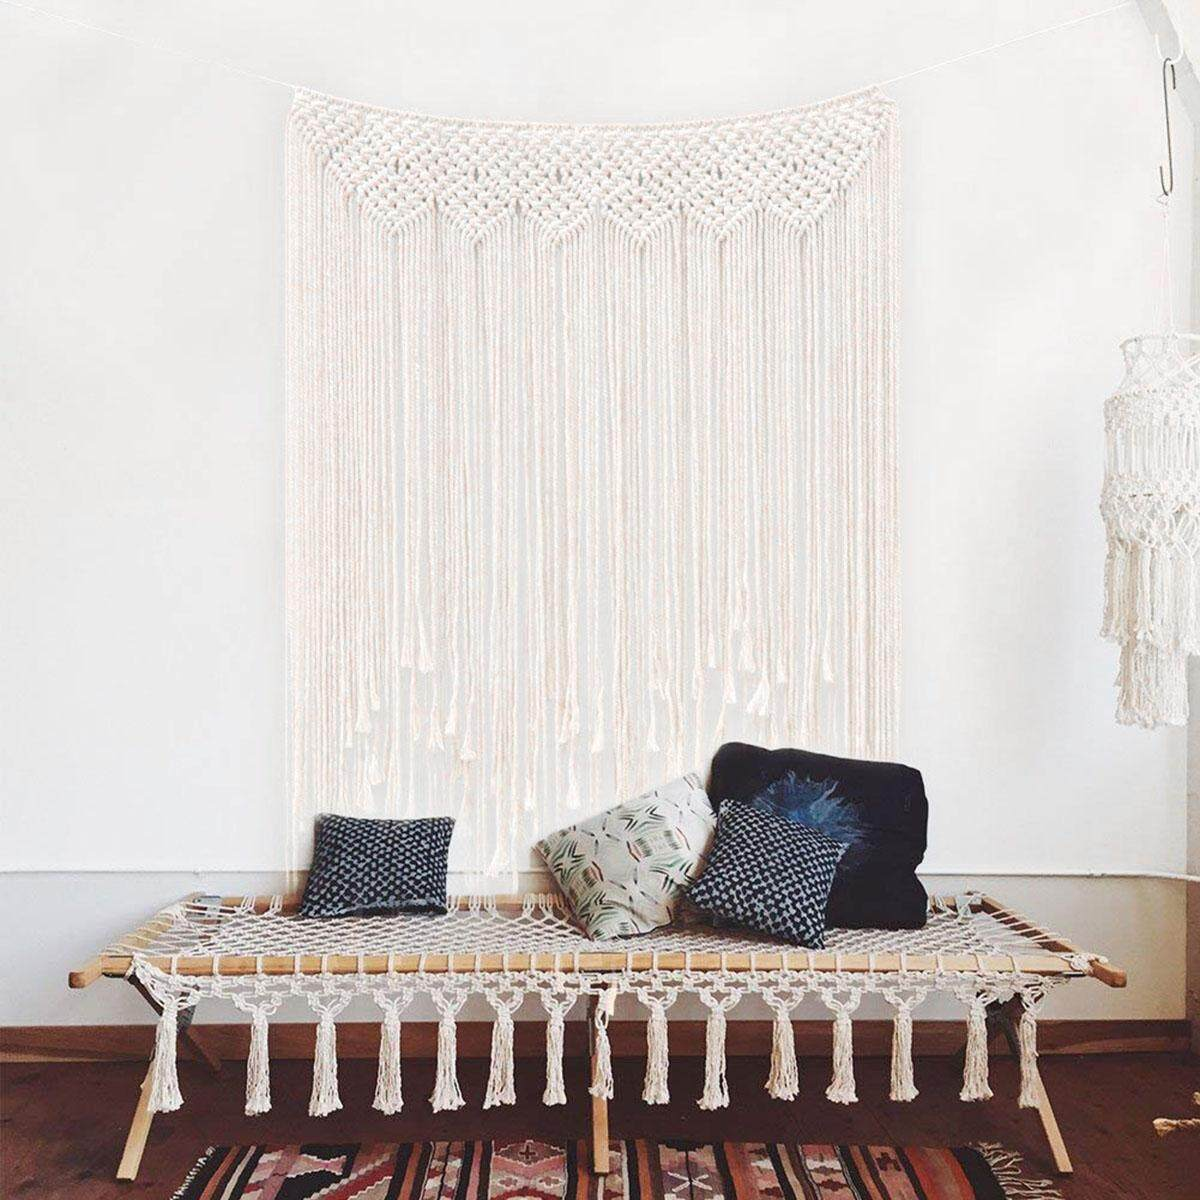 Macrame Wall Hanging 100 x 115cm Cotton Handmade Woven Wall Tapestry Large Boho Wedding Backdrop Wall Decoration for Living Room